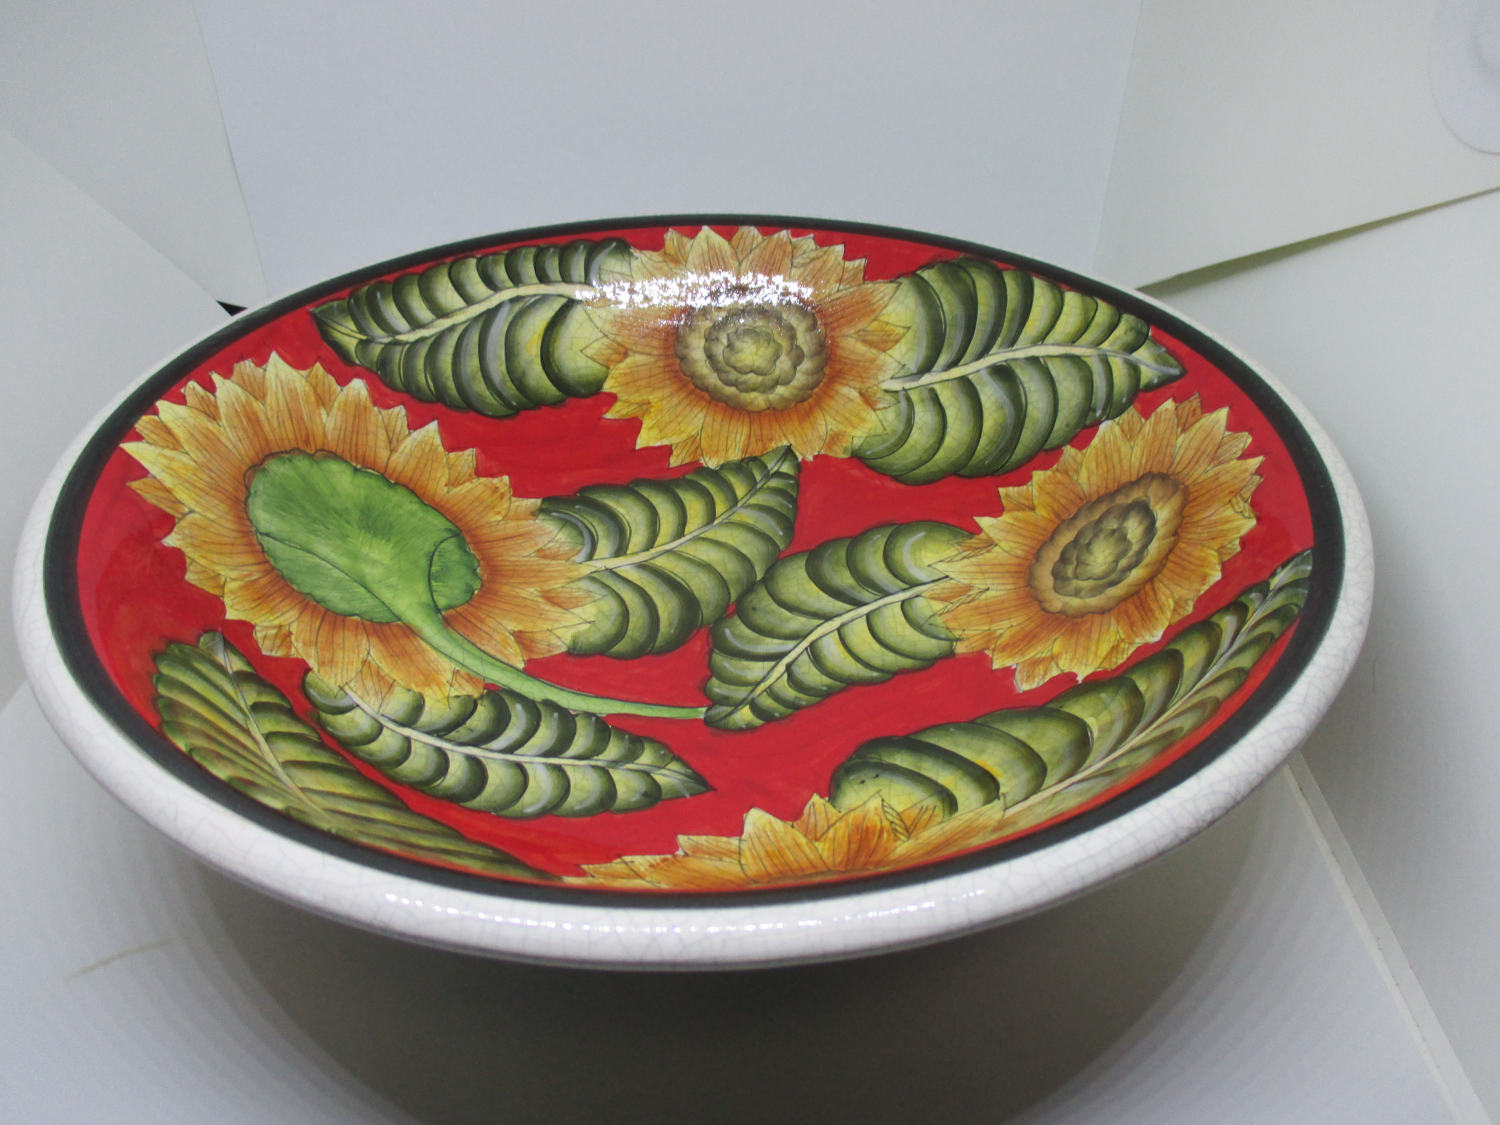 Fantastic Giant Sunflower Bowl Kitchen Home Decor Collectible Display Farmhouse Cottage Summer Fall Pottery